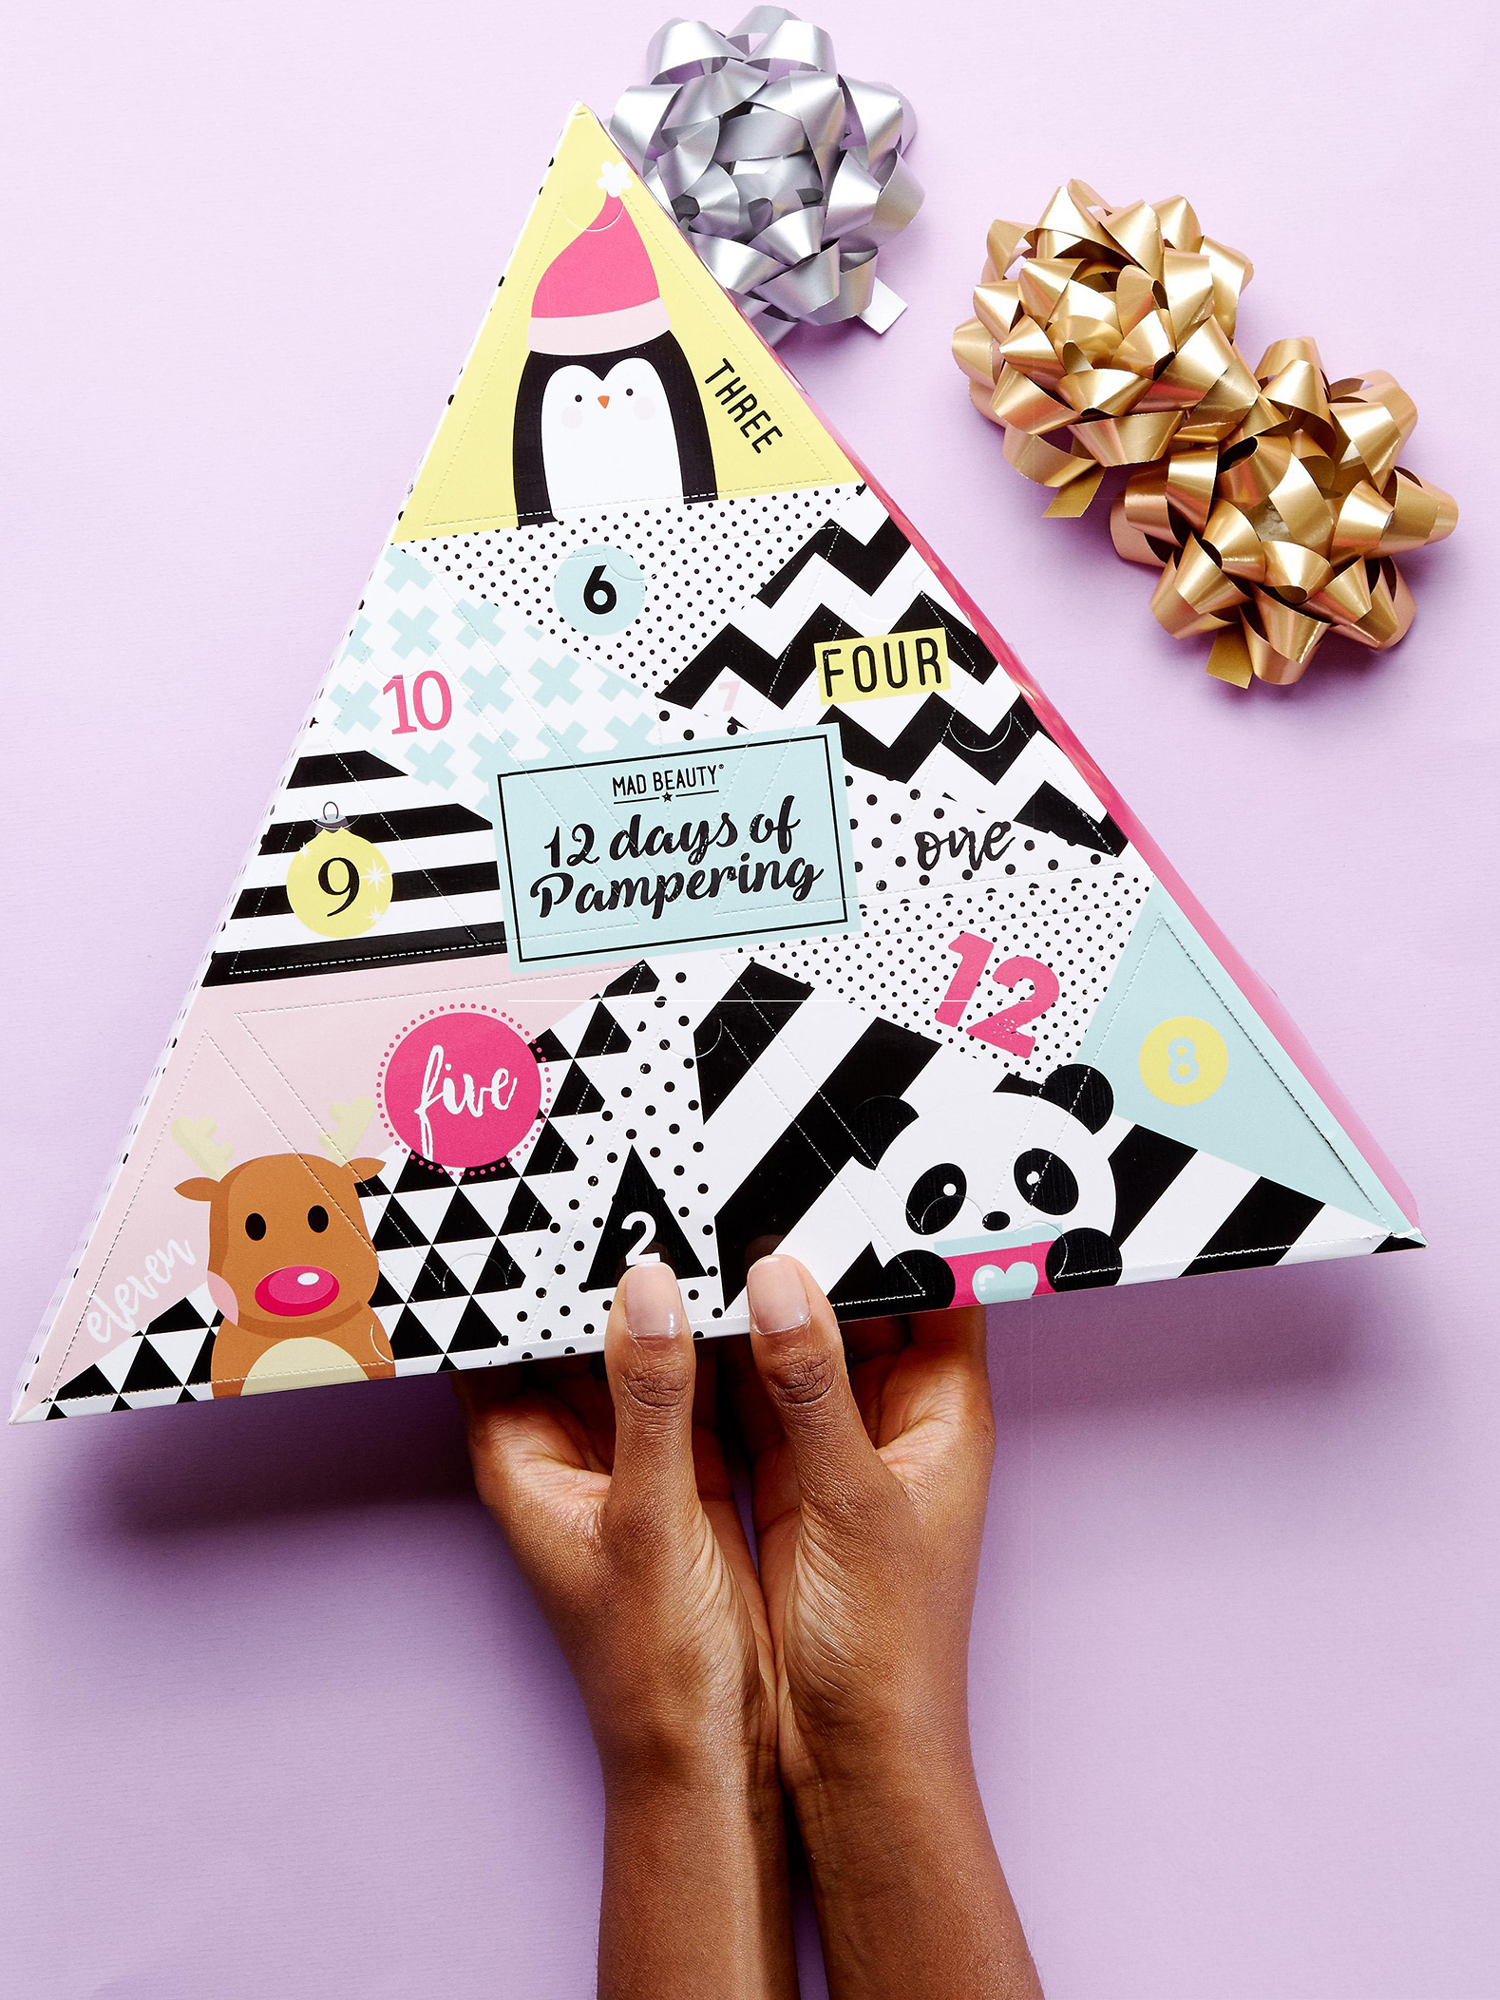 These Makeup-Filled Advent Calendars Are the Reason For the Season